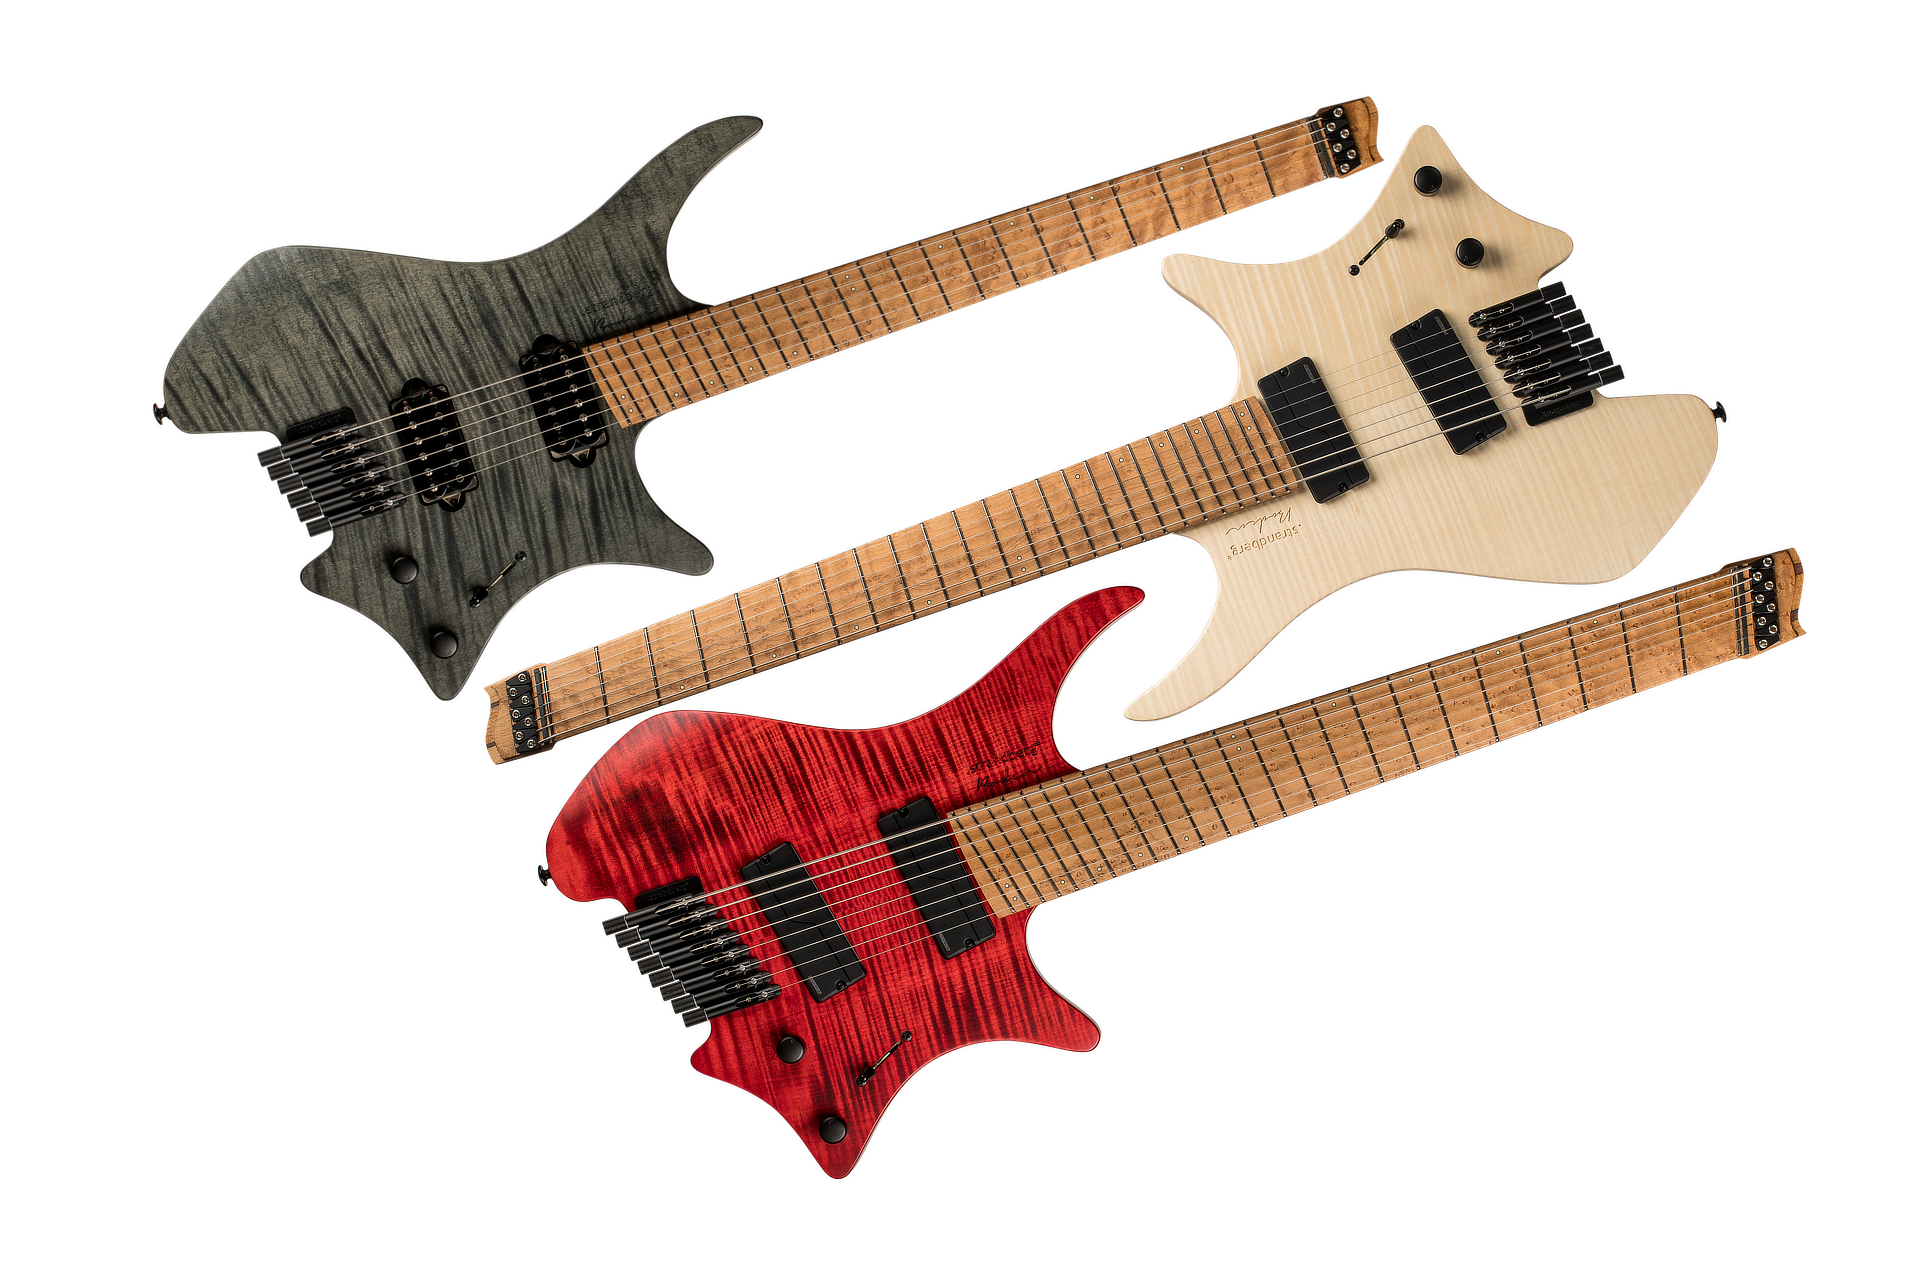 Multi Scale Guitars Strandberg The Following Diagram Details Various Parts Of An Electric Guitar Boden Original Family Note Different Neutral Points